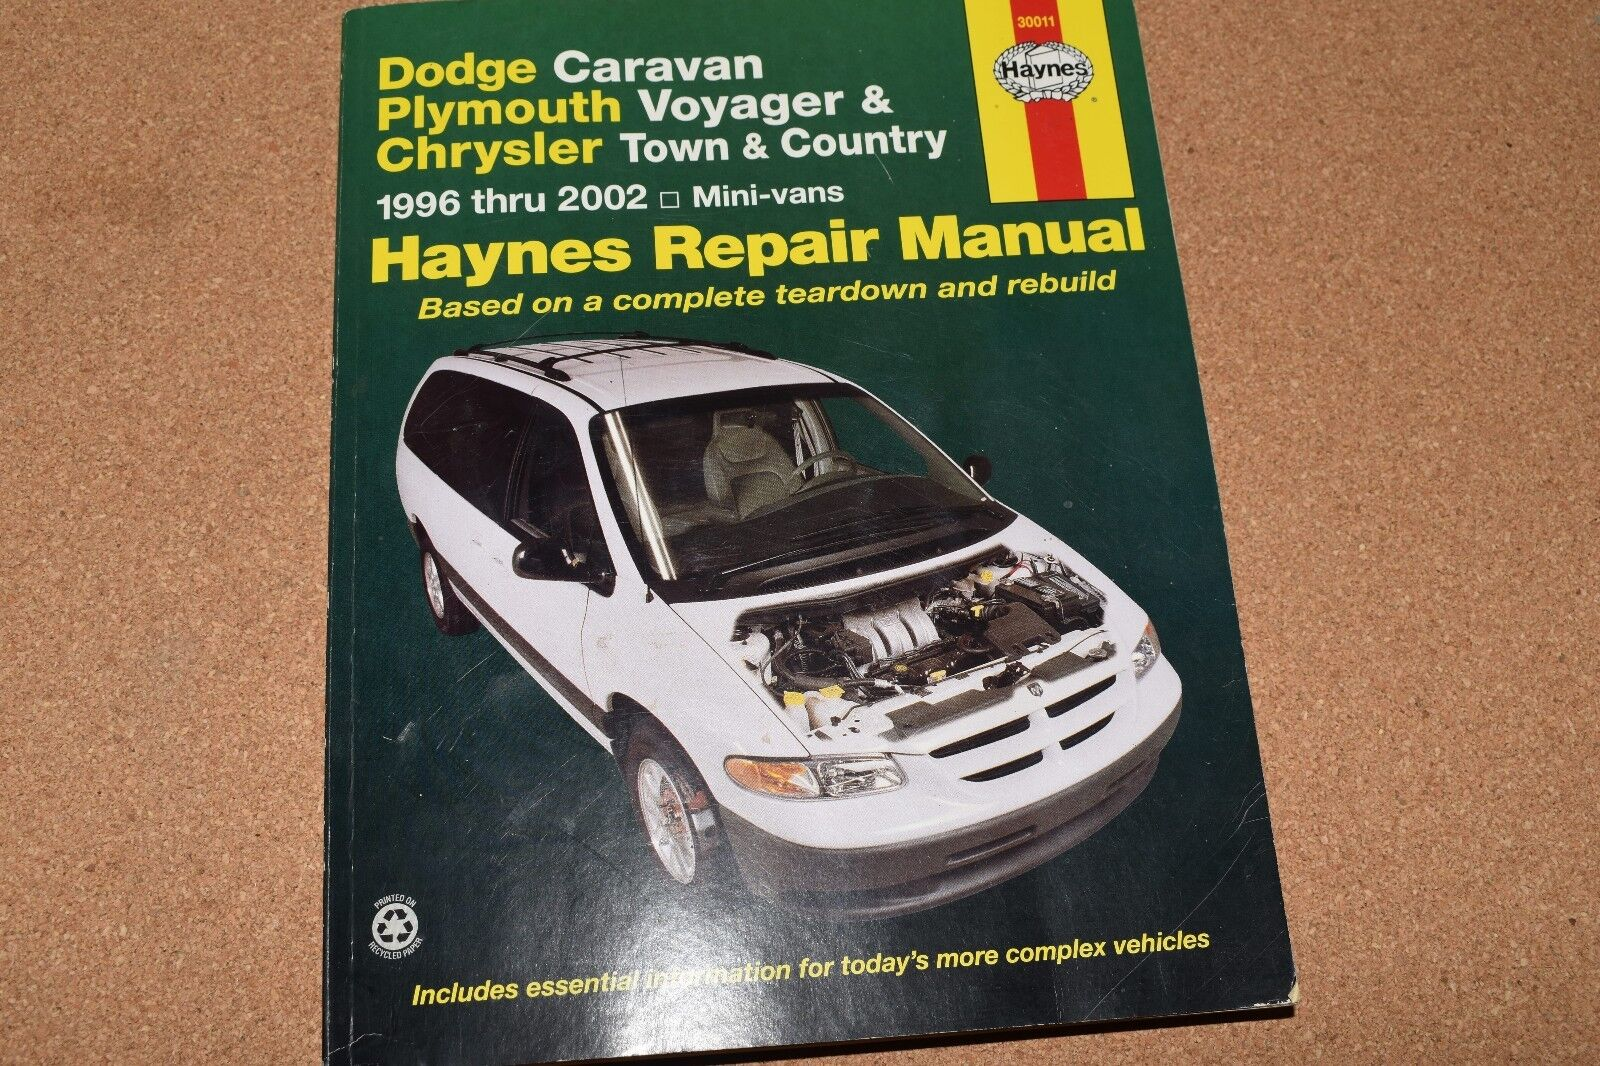 1996 to 1999 Caravan Voyager Town & Country - Haynes Repair Manual # 30011  | eBay